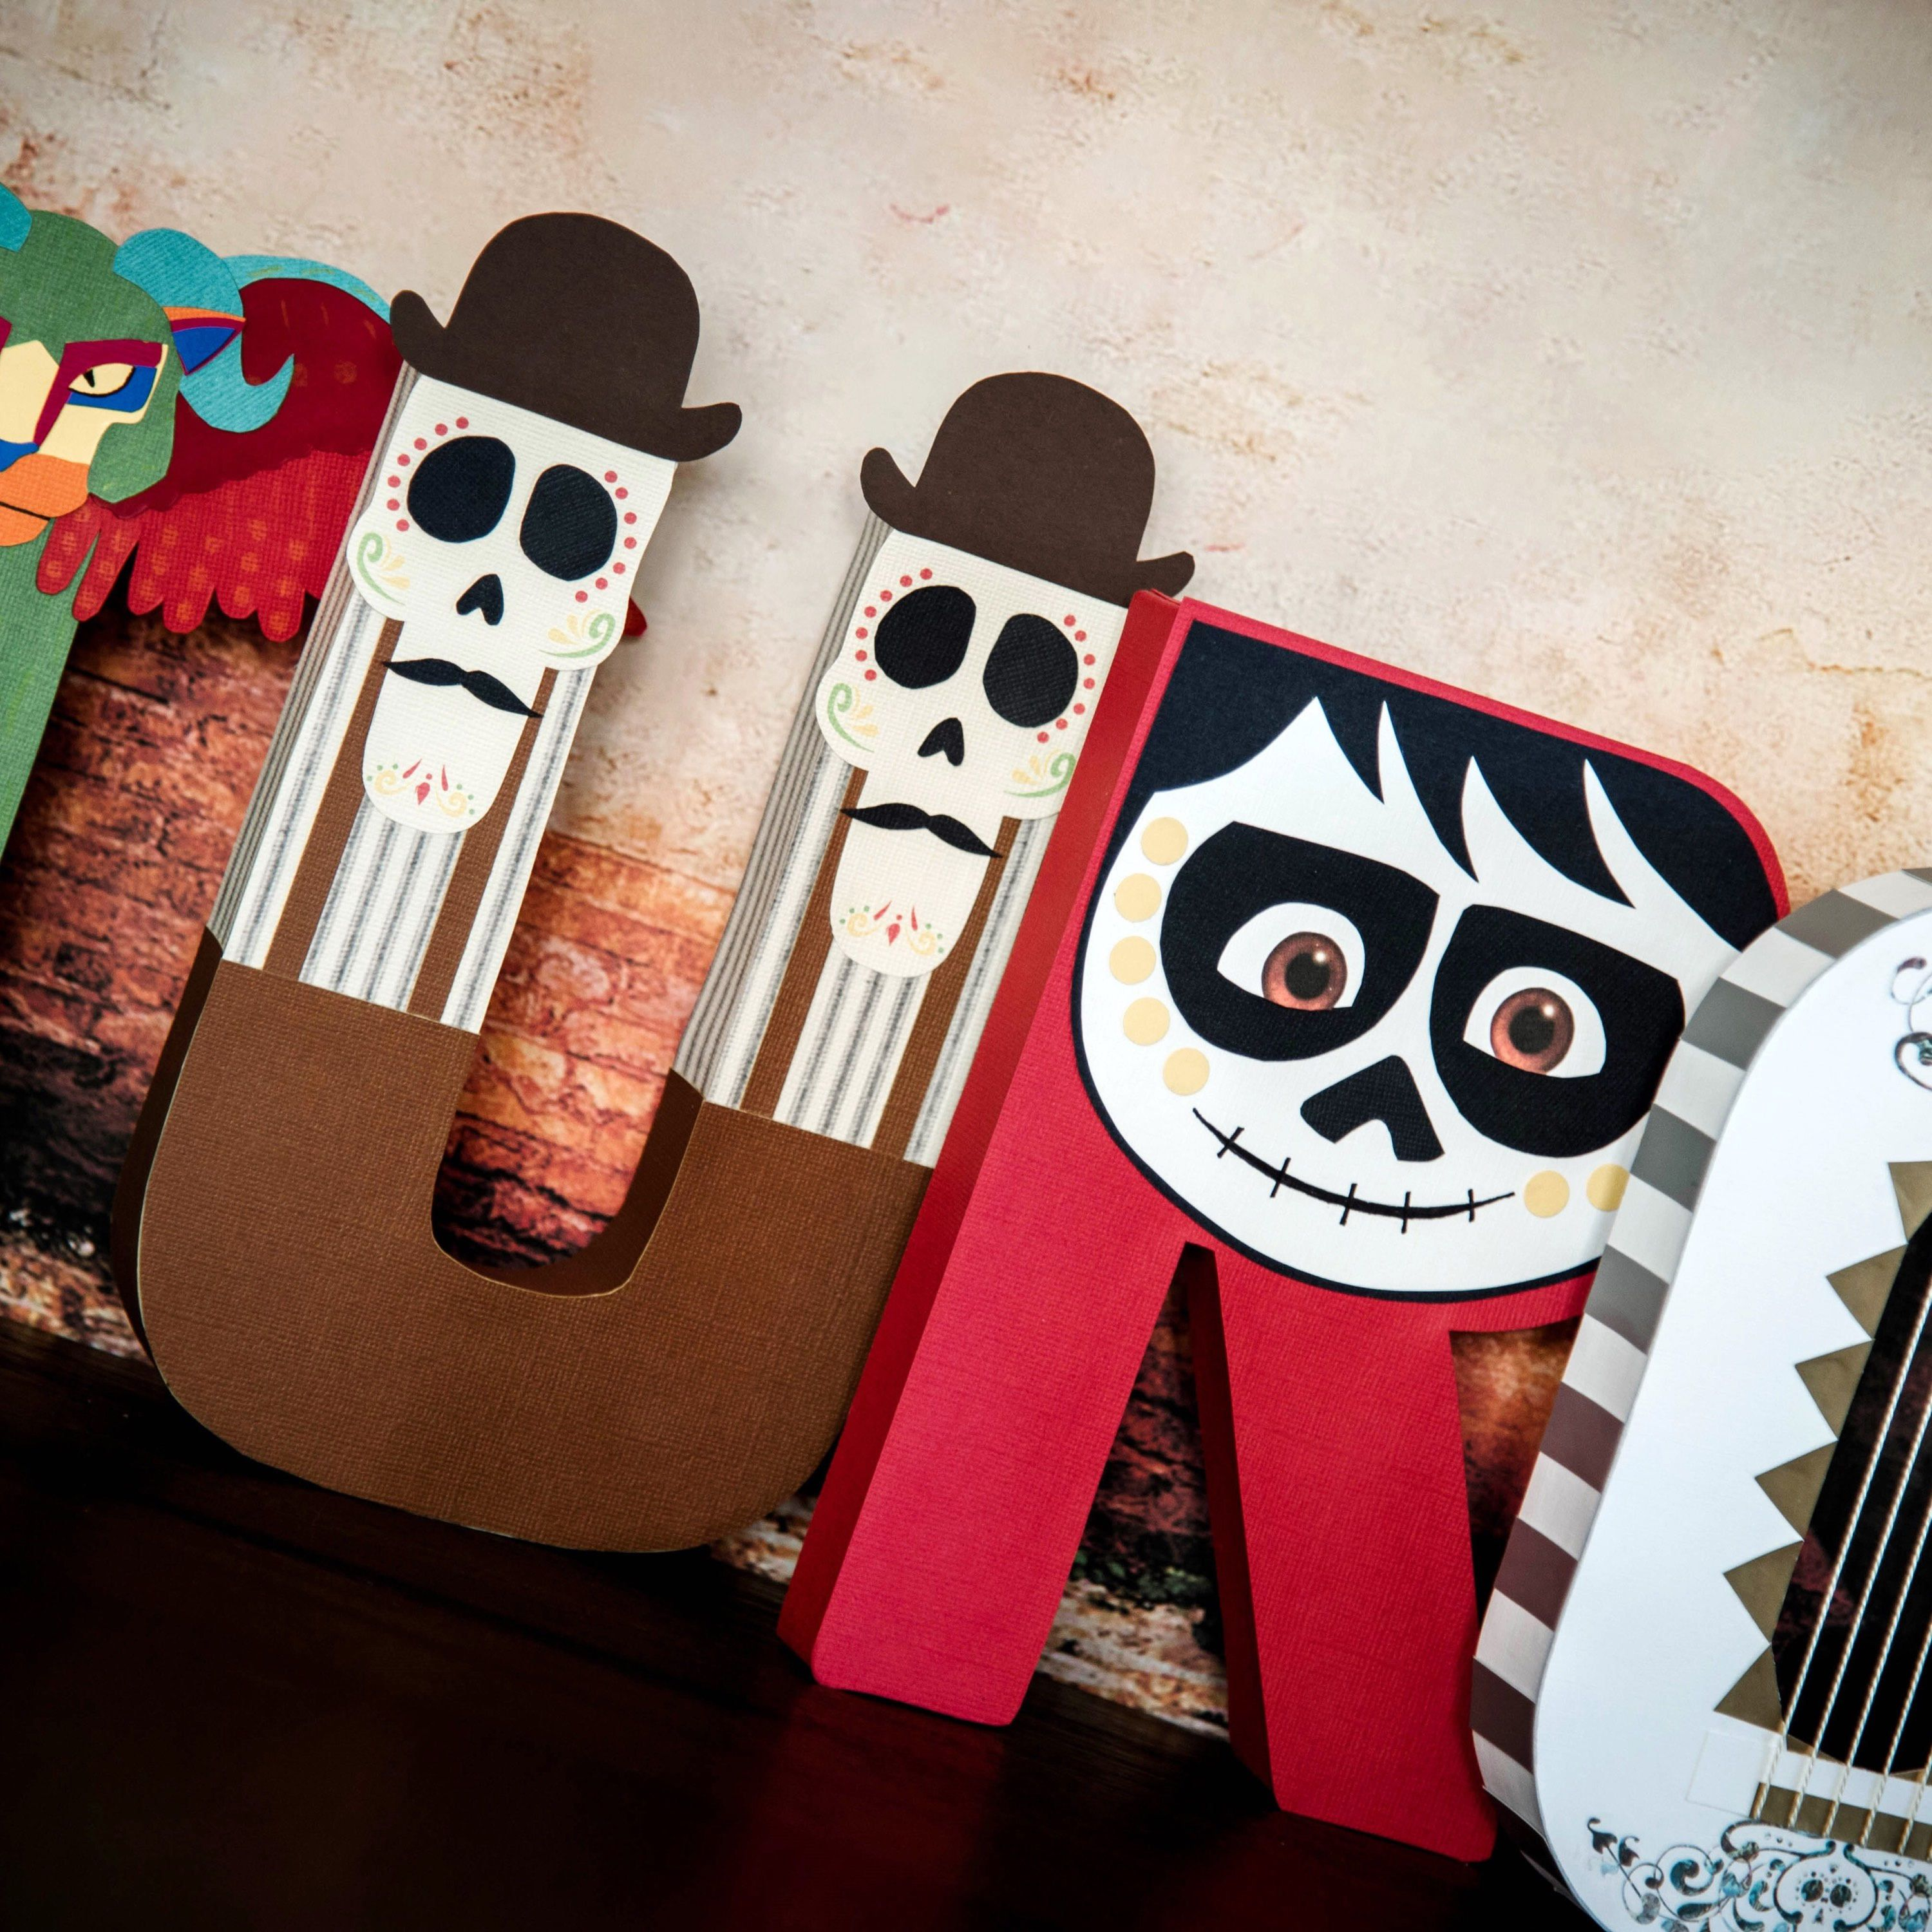 Coco Paper Mache Letters cost is